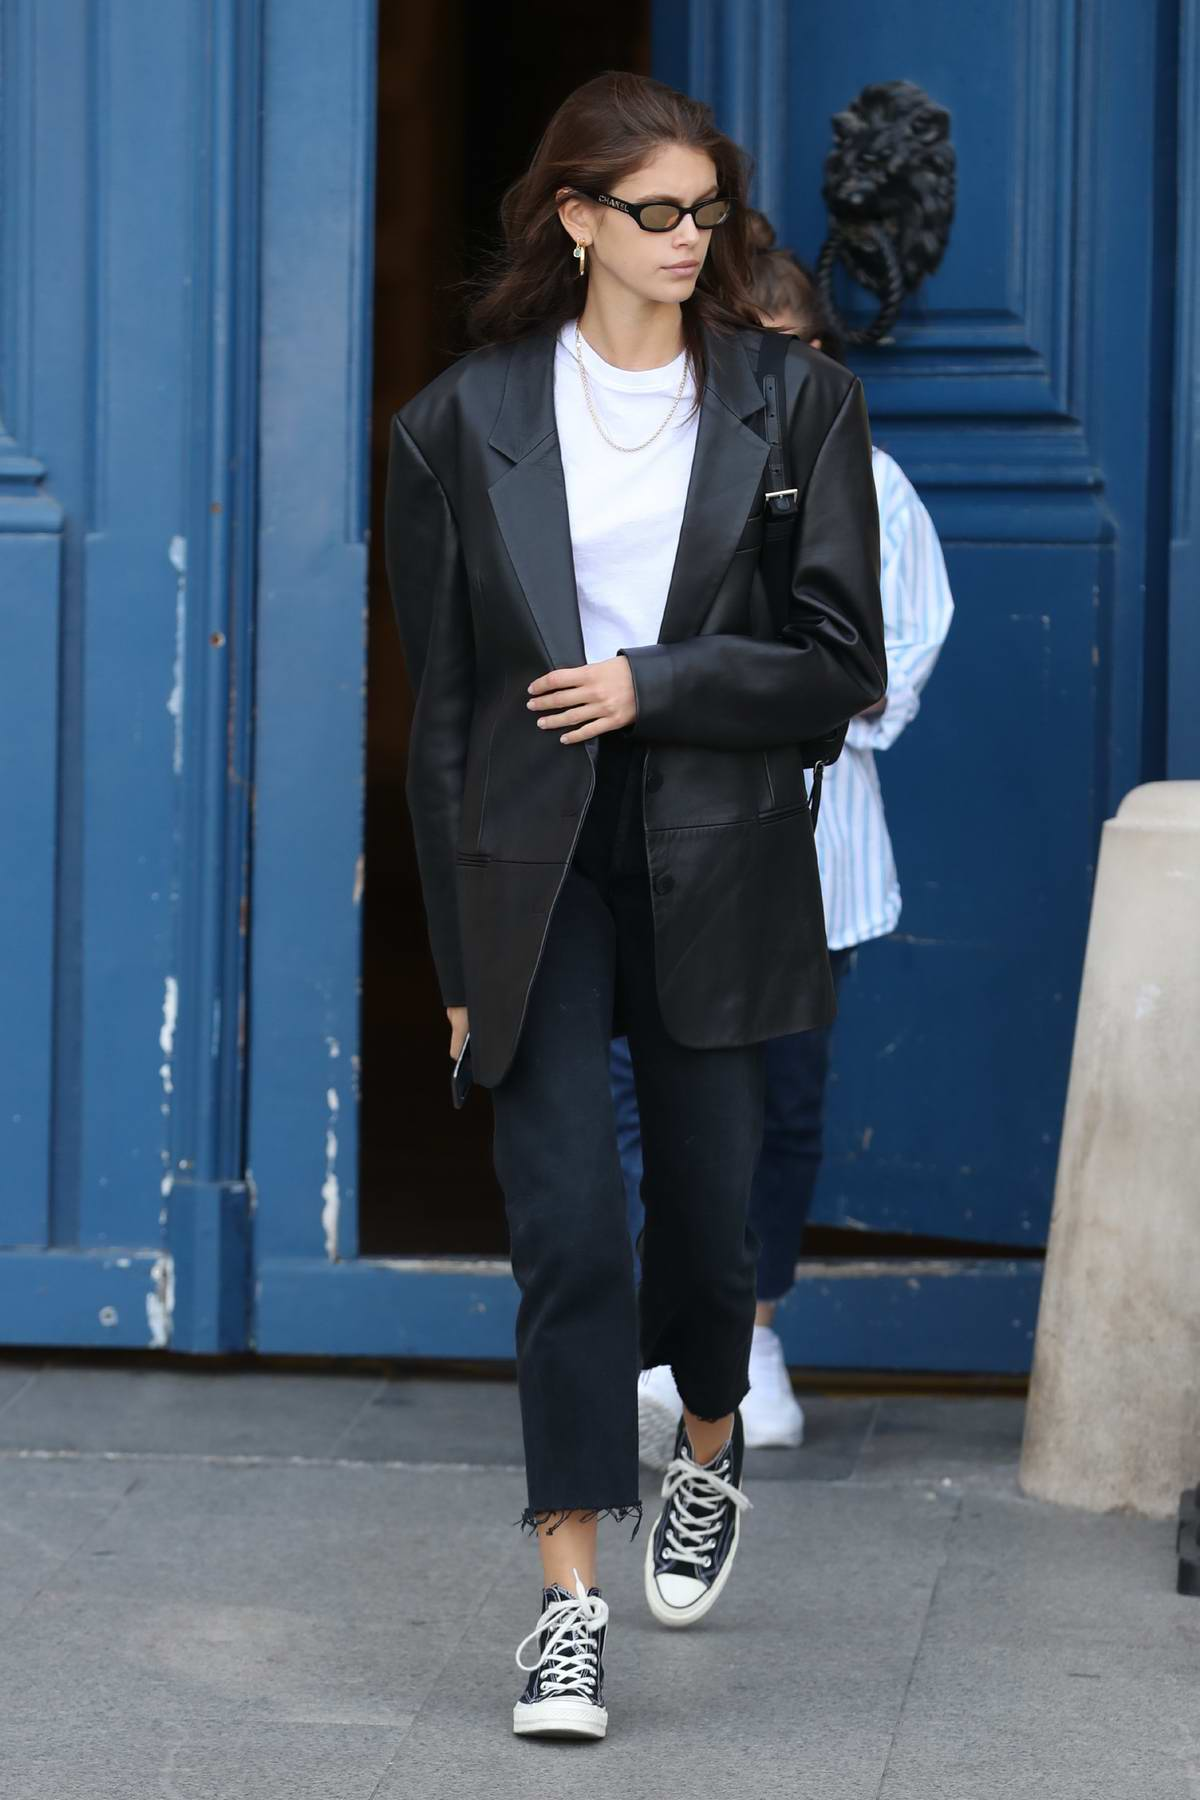 Kaia Gerber steps out in a black leather coat over a white top with cropped jeans and converse in Paris, France